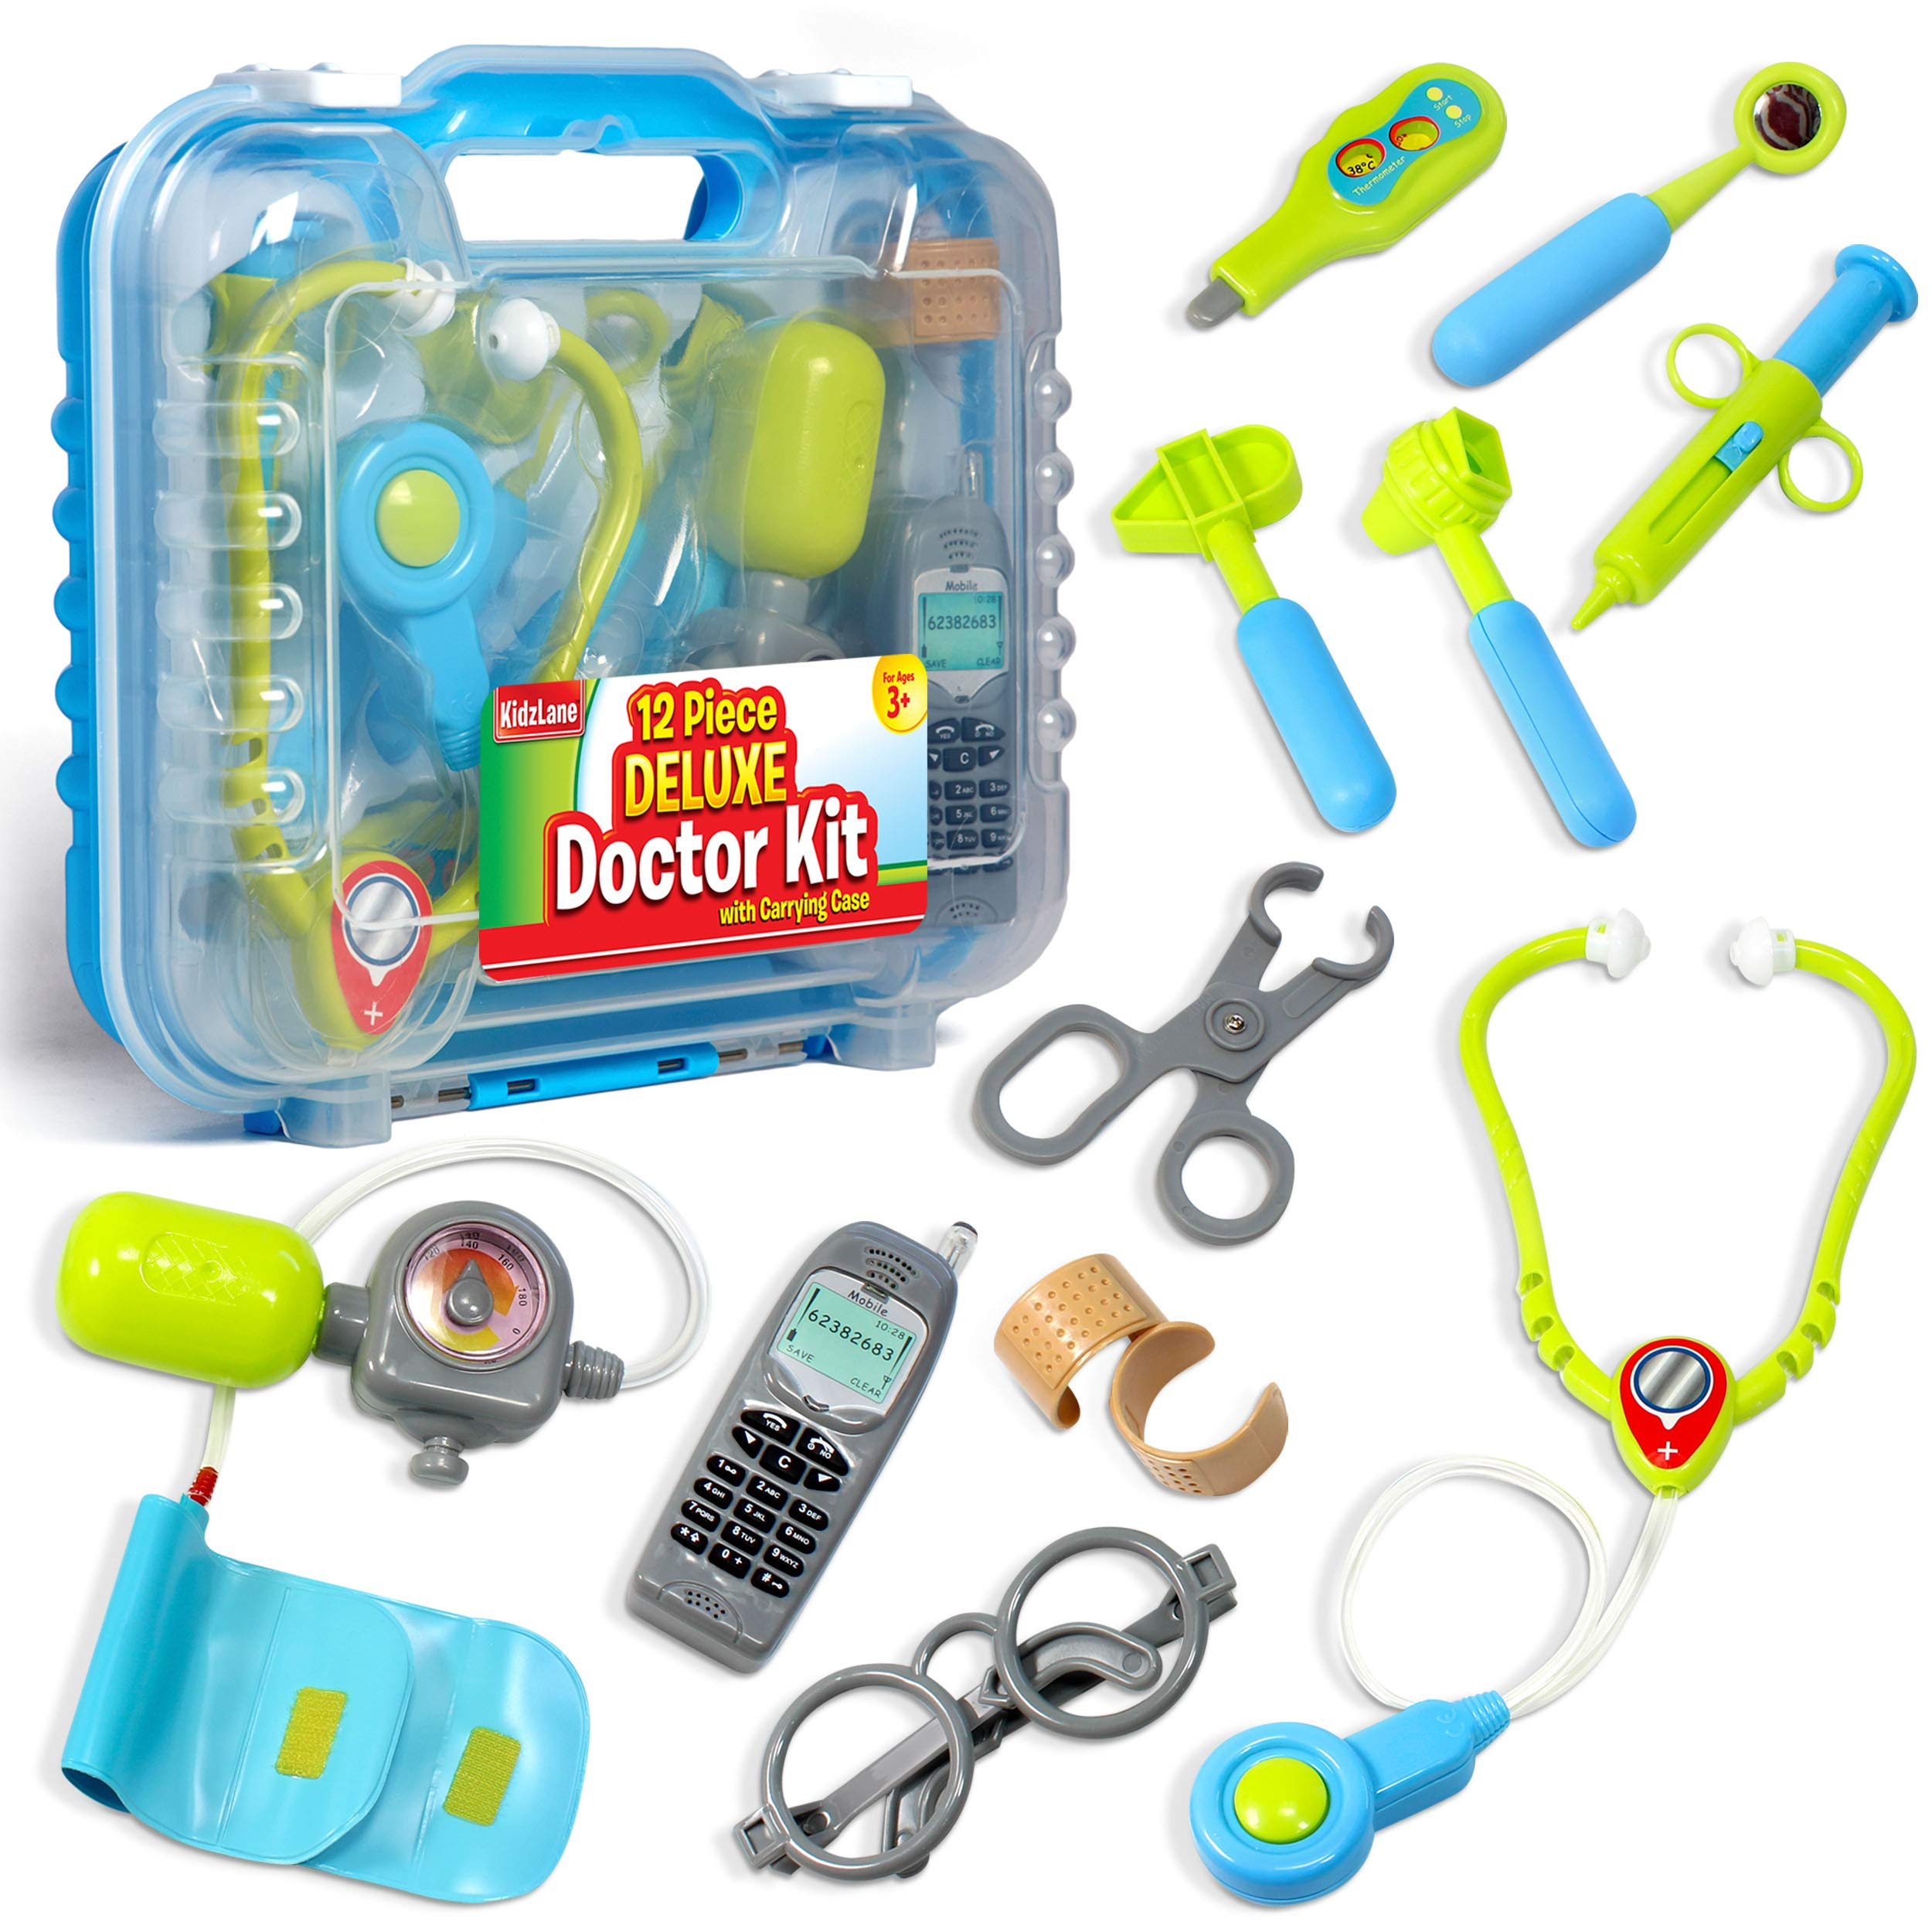 31pcs Storage Box Suit Children Tools Set Kids Role Play Simulation Repair Tools For Boys Girls Skill And Brain Training New Varieties Are Introduced One After Another Hand Tool Sets